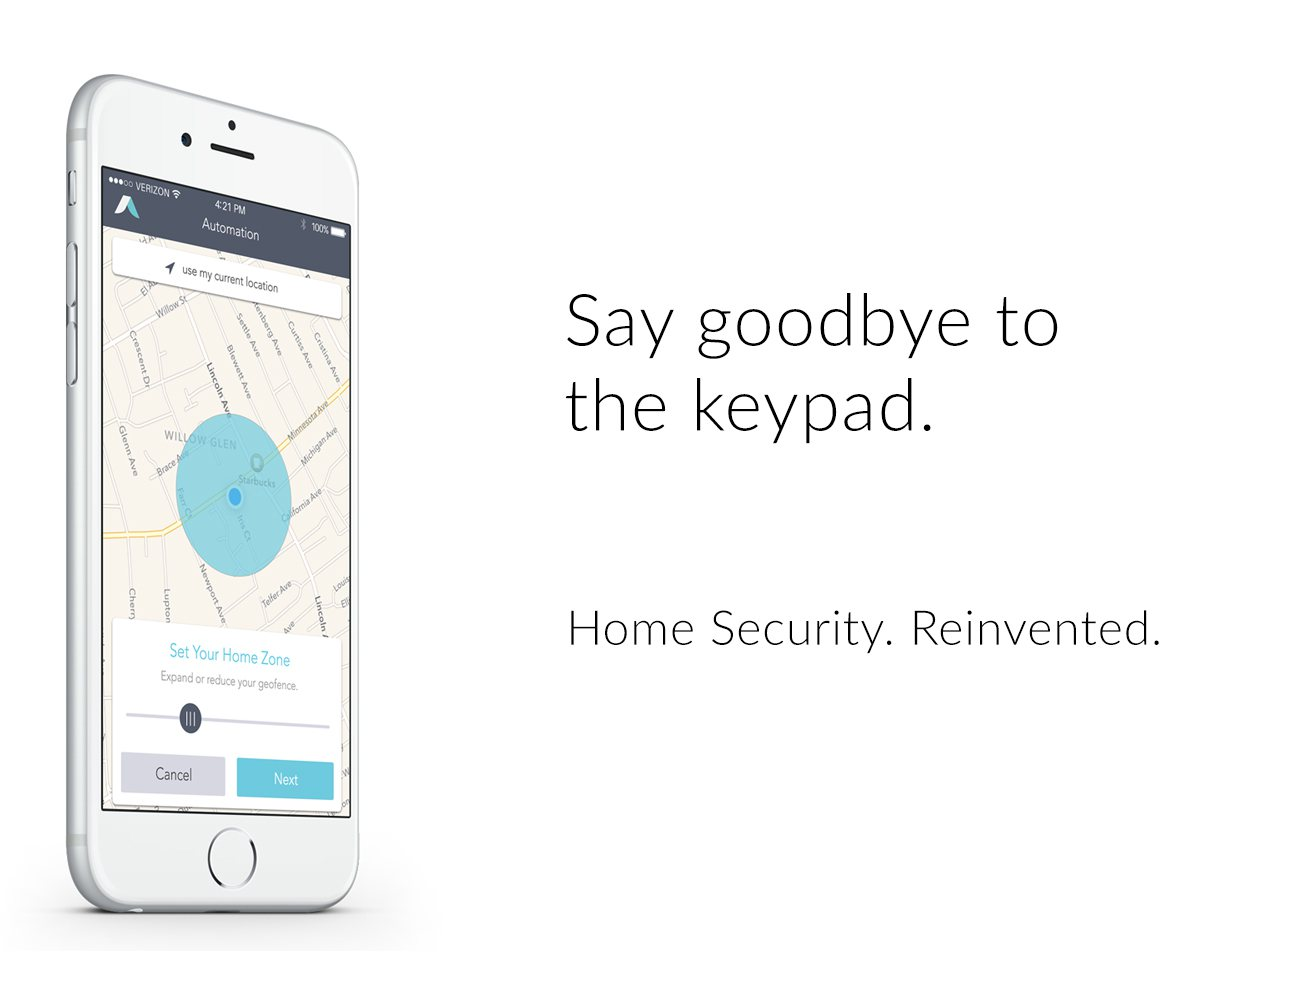 abode – Home Security & Automation. Reinvented.